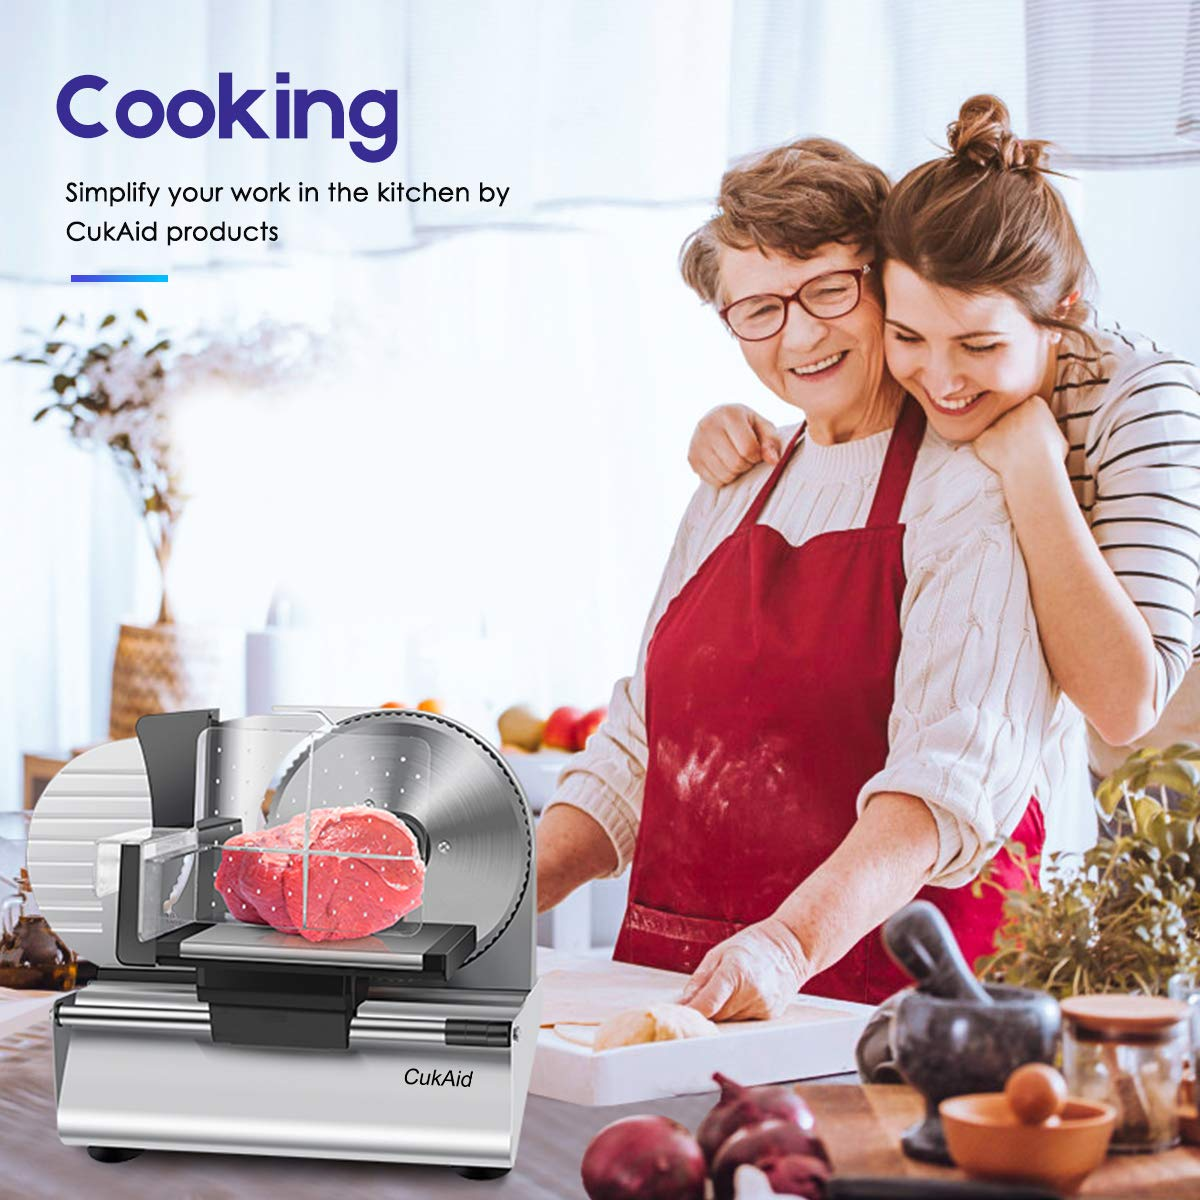 CukAid Electric Meat Slicer Machine, Deli Cheese Bread Food Slicer, Dishwasher Safe, Removable Stainless Steel Blade & Food Carriage and Pusher, 7/8 Inch Adjustable Thickness, 180W, Commercial & Home Use by CukAid (Image #6)